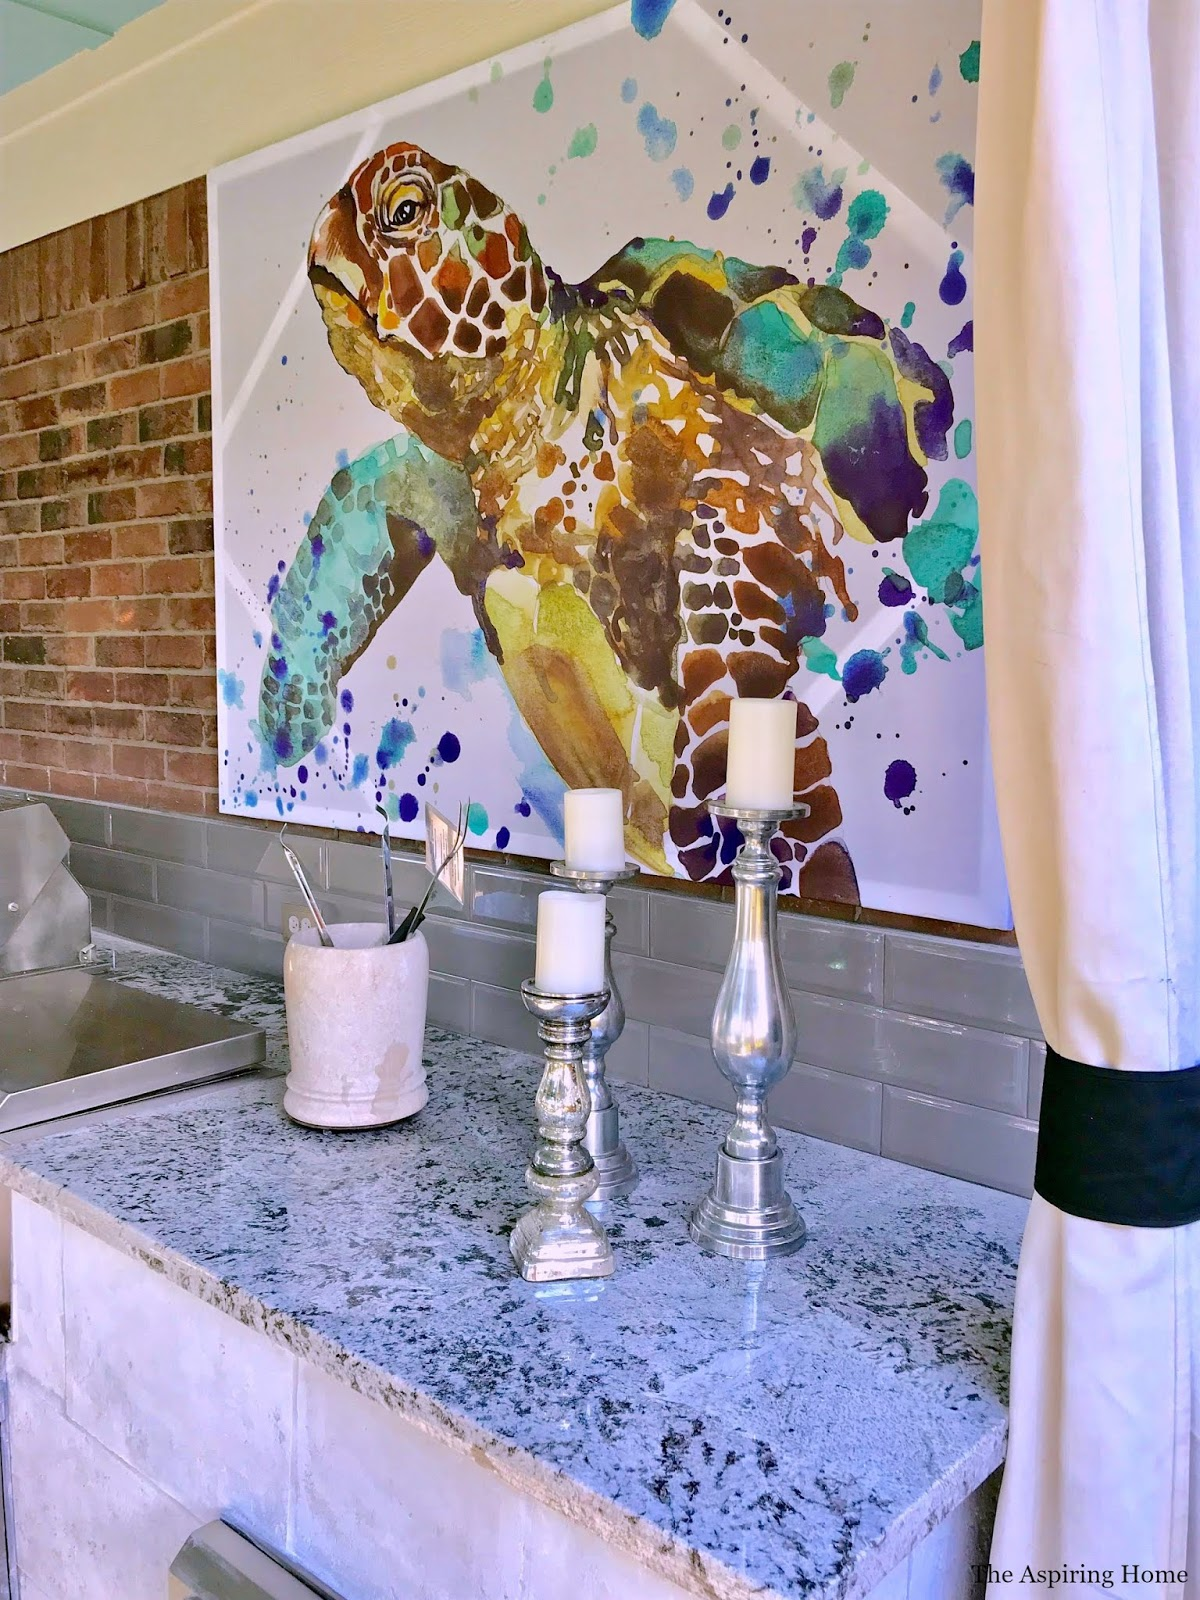 Create large art from shower curtain